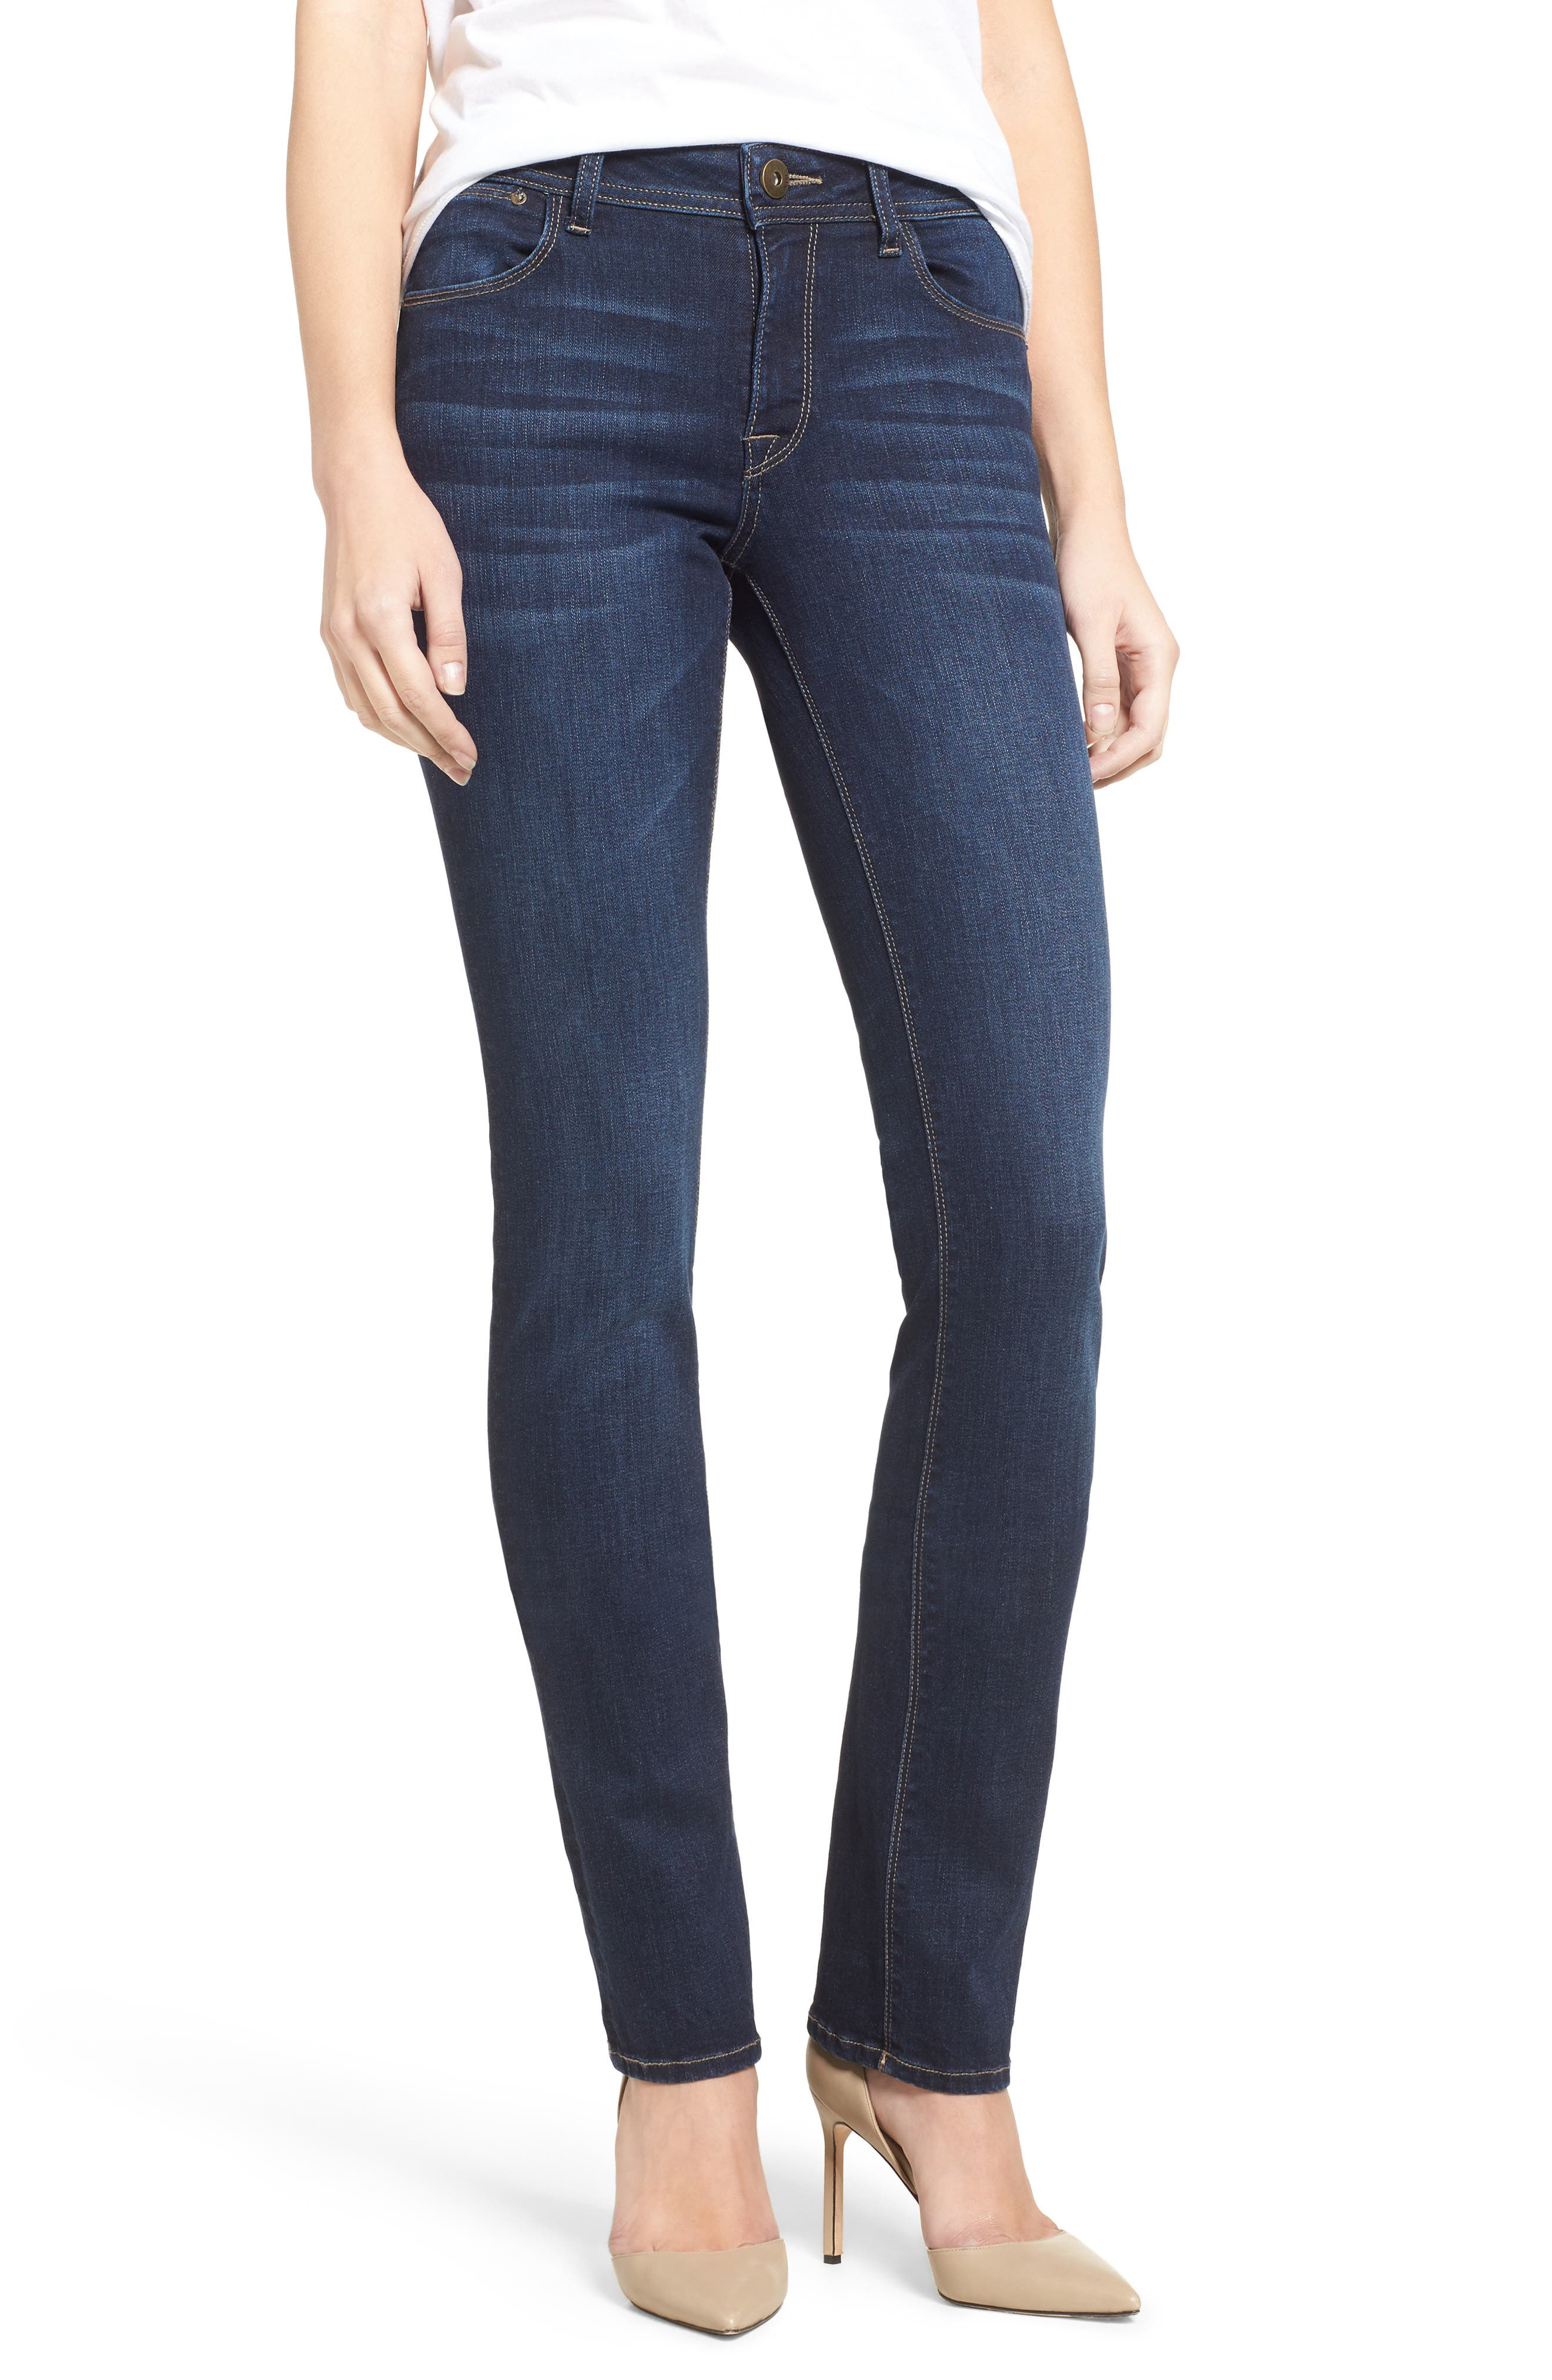 Alternate Image 1 Selected - DL1961 'Coco' Curvy Slim Straight Leg Jeans (Atlas)